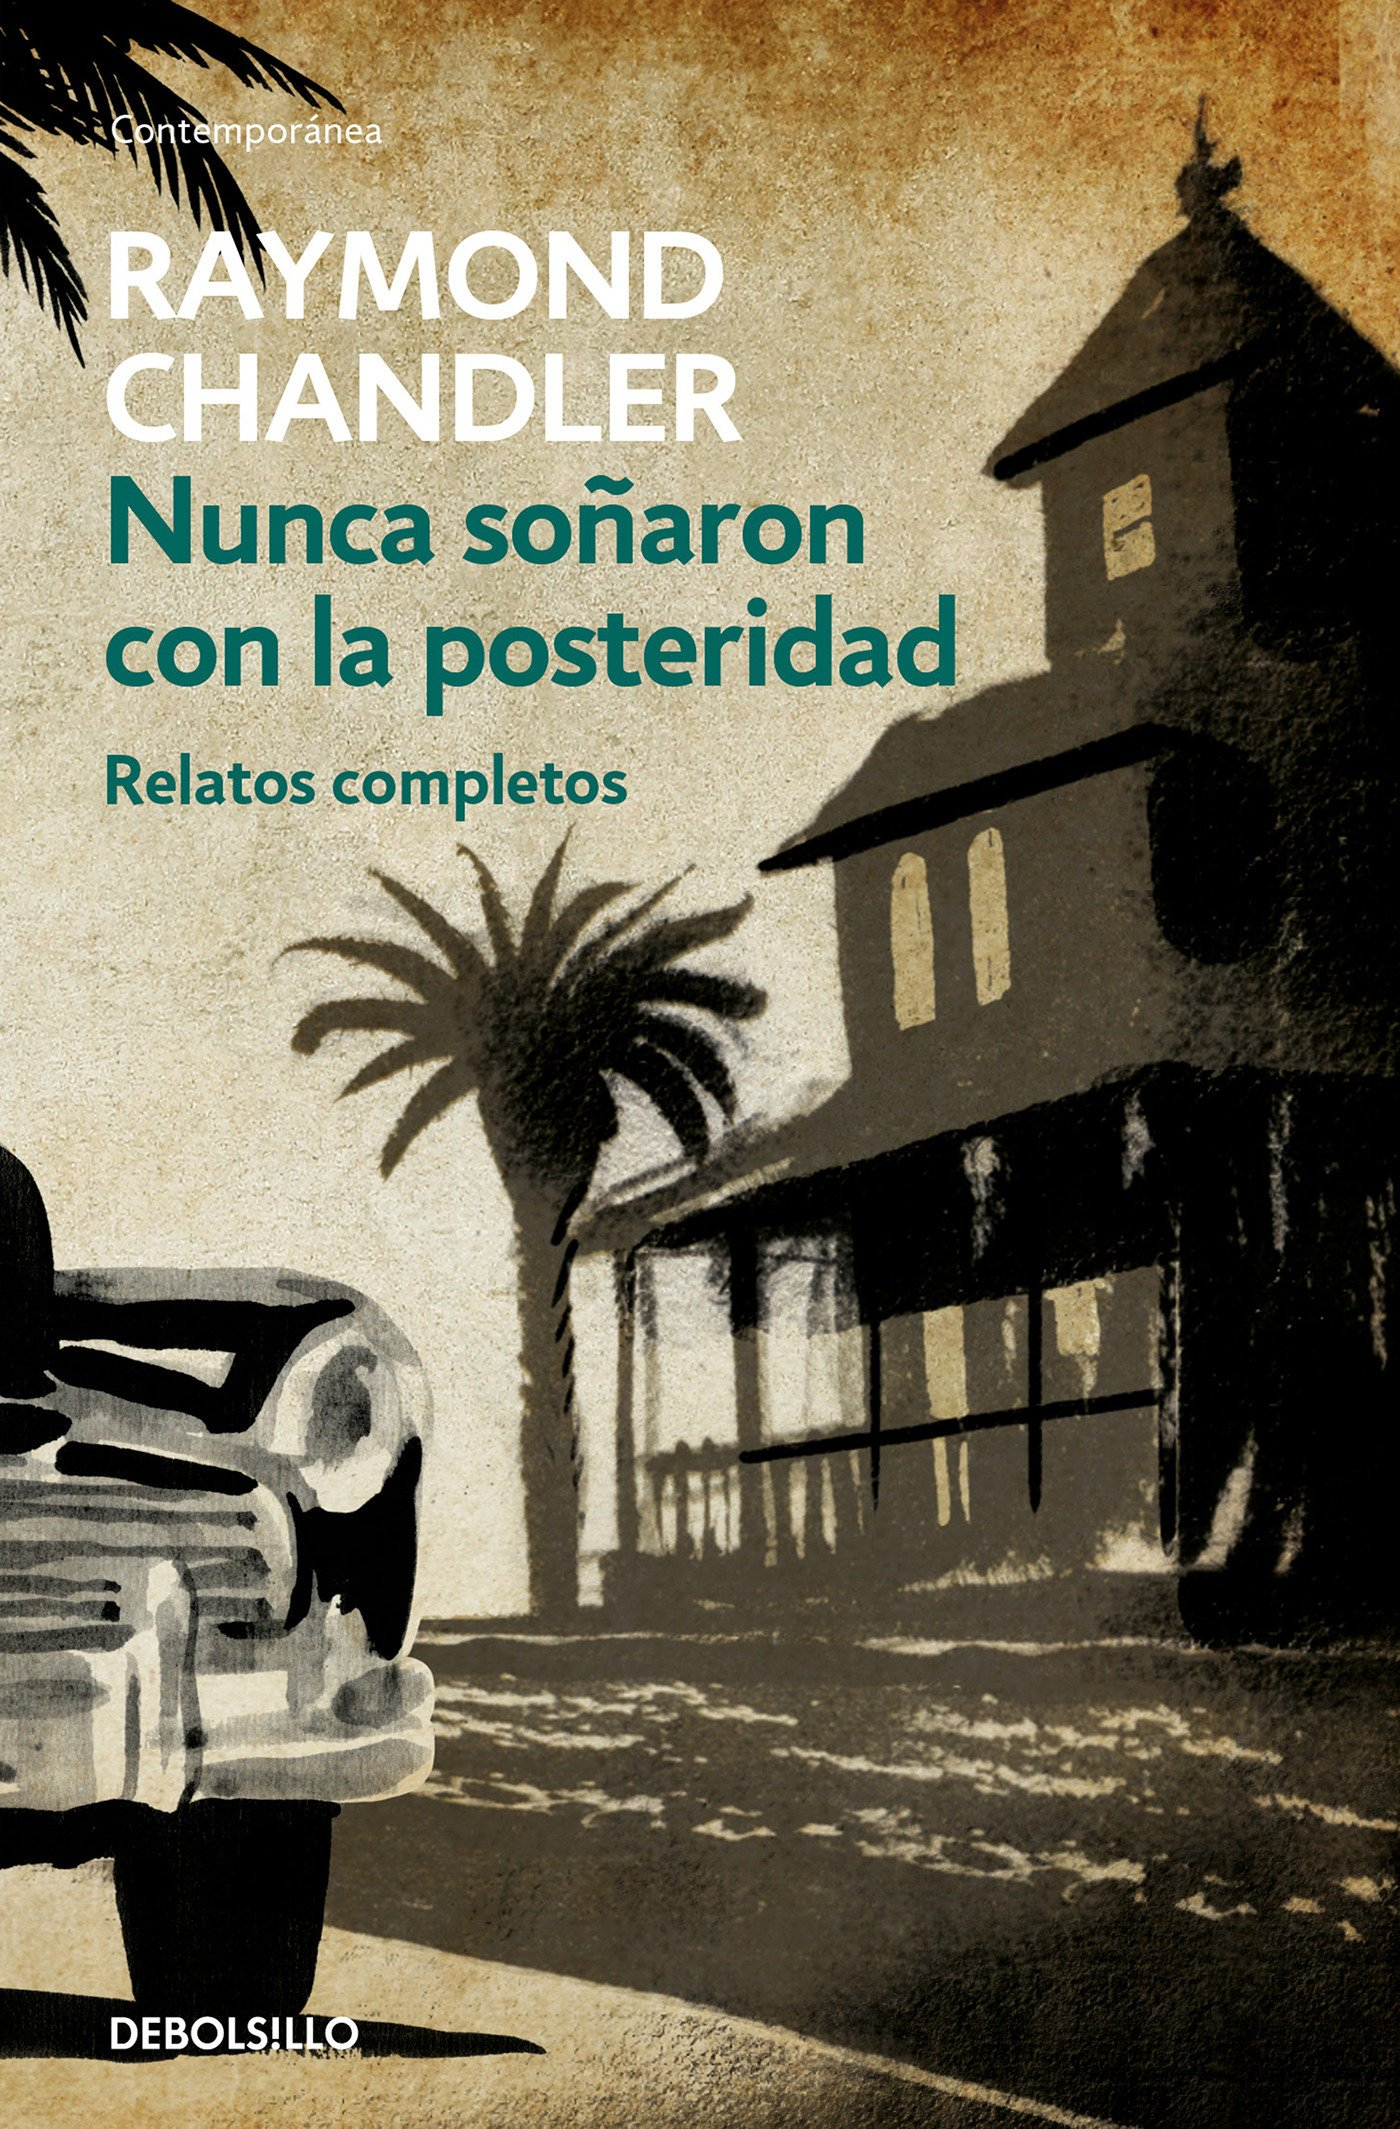 Nunca soñaron con la posteridad: Relatos completos (CONTEMPORANEA) Tapa blanda – 16 nov 2017 Raymond Chandler DEBOLSILLO 8466334823 Spanish: Adult Fiction